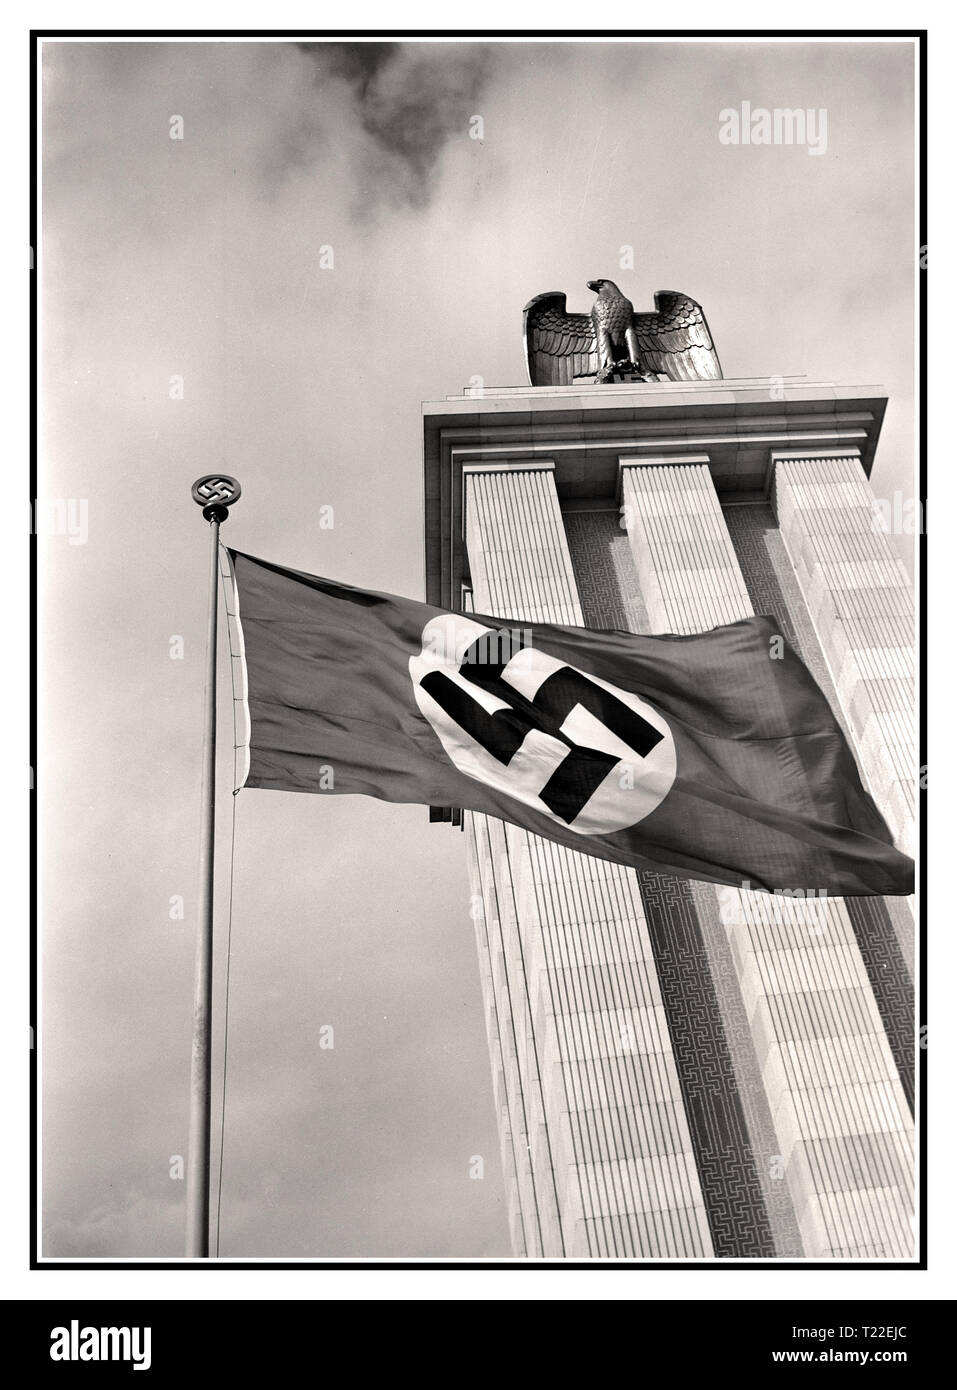 GERMANY 1937 World Exhibition Paris 1937 The German Pavilion with German eagle and Swastika Flag flying at the Paris World Exhibition France The Exposition Internationale des Arts et Techniques dans la Vie Moderne (International Exposition of Art and Technology in Modern Life) was held from 25 May to 25 November 1937 in Paris, France Albert Speer's pavilion was culminated by a tall tower crowned with the symbols of the Nazi state: an eagle and the swastika. The pavilion was conceived as a monument to 'German pride and achievement'. - Stock Image